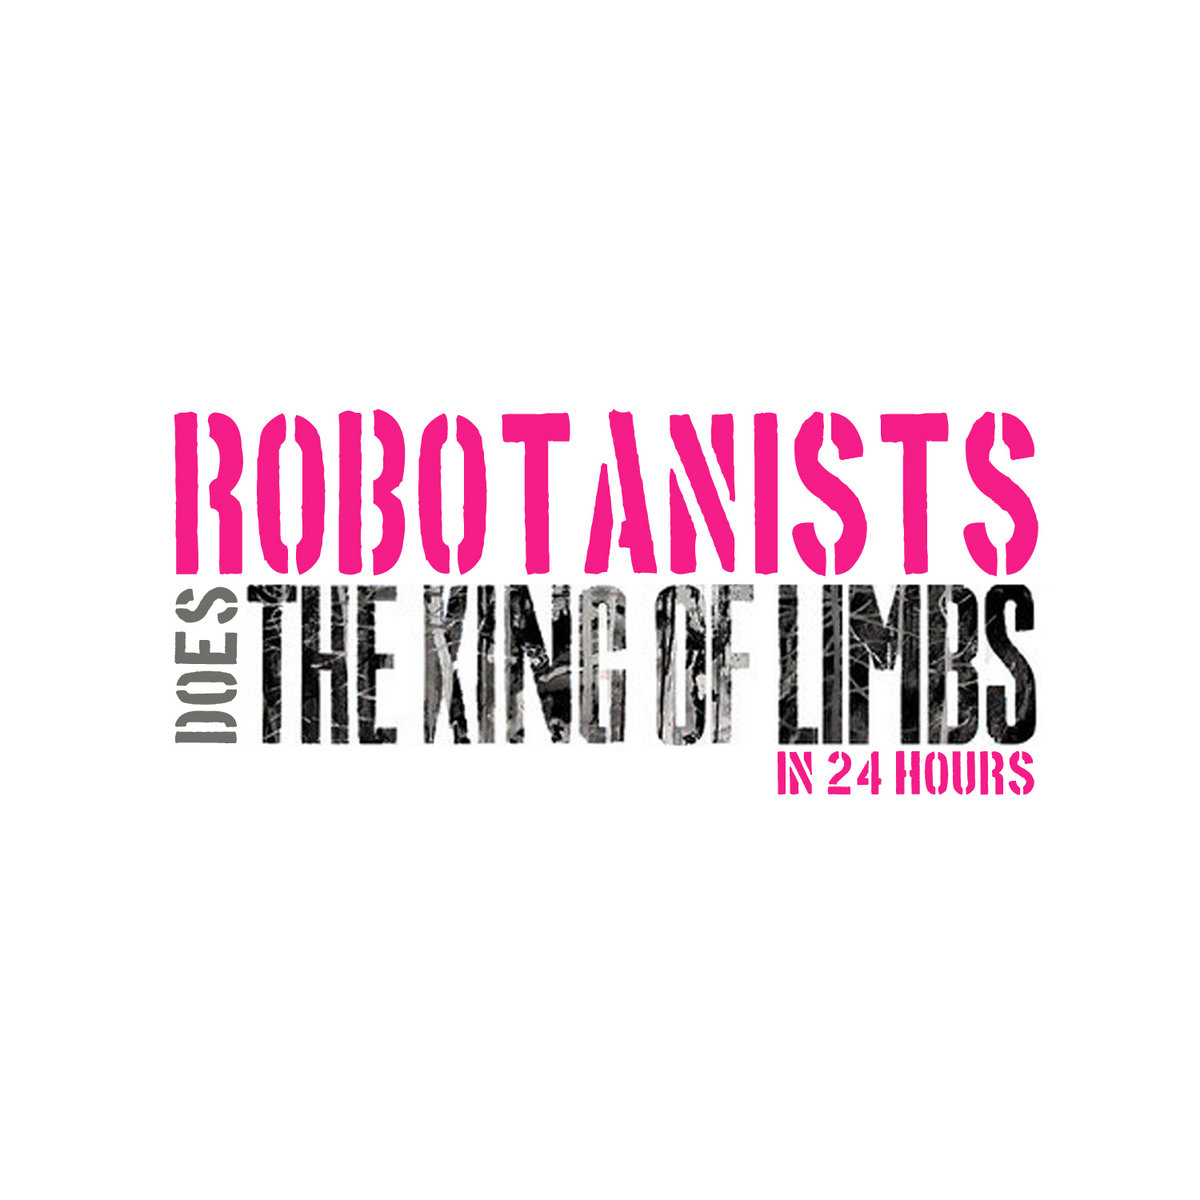 Lotus Flower Robotanists